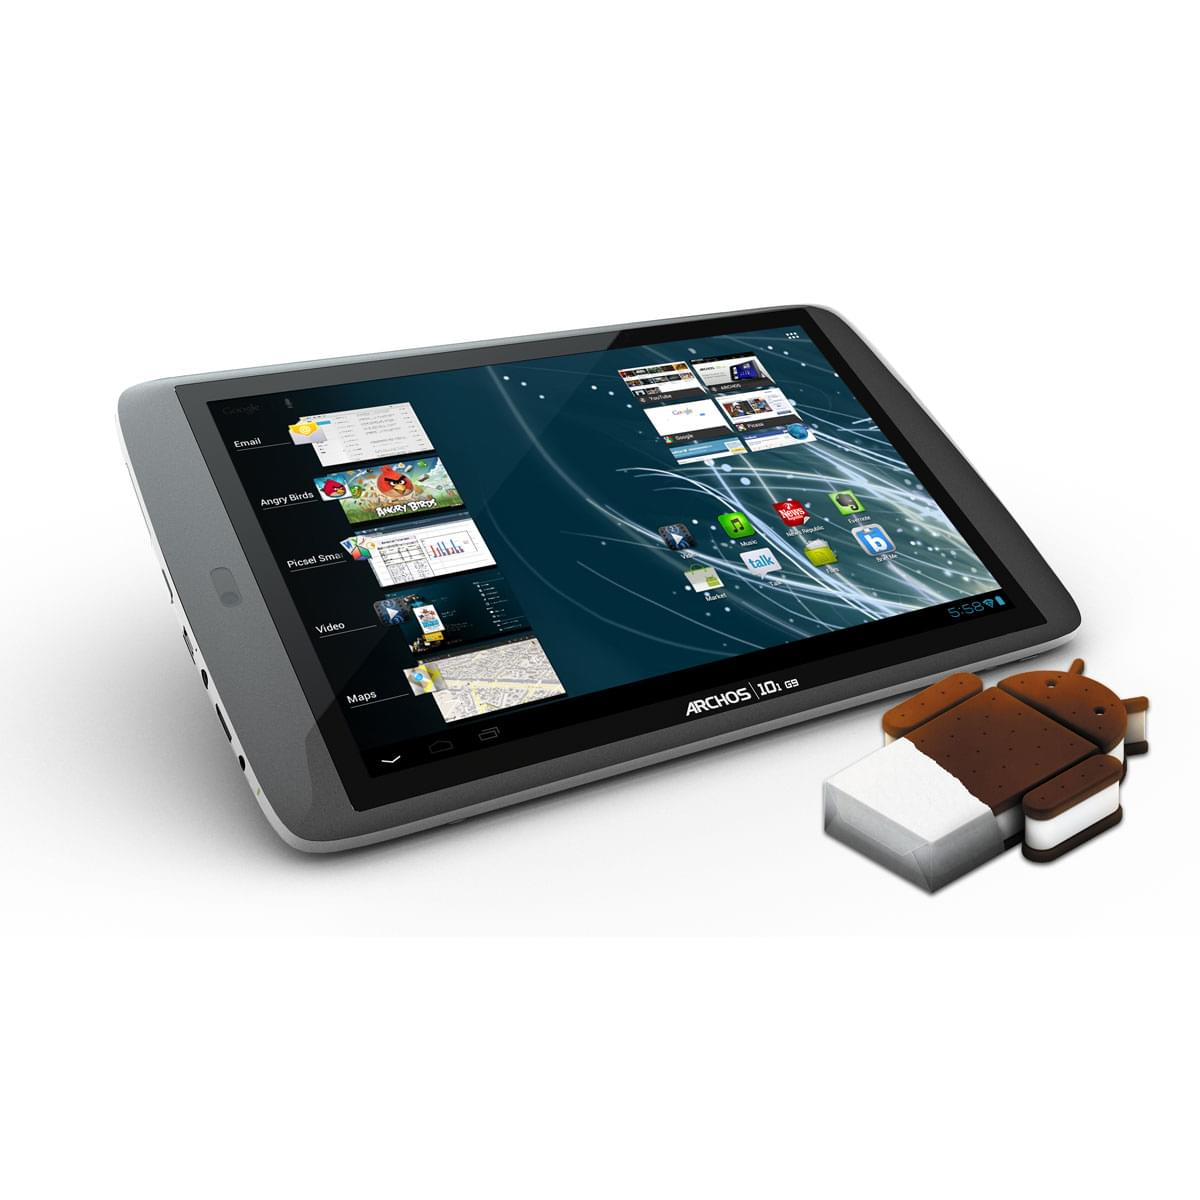 Archos 101 G9 Turbo ICS - Tablette tactile Archos - Cybertek.fr - 0